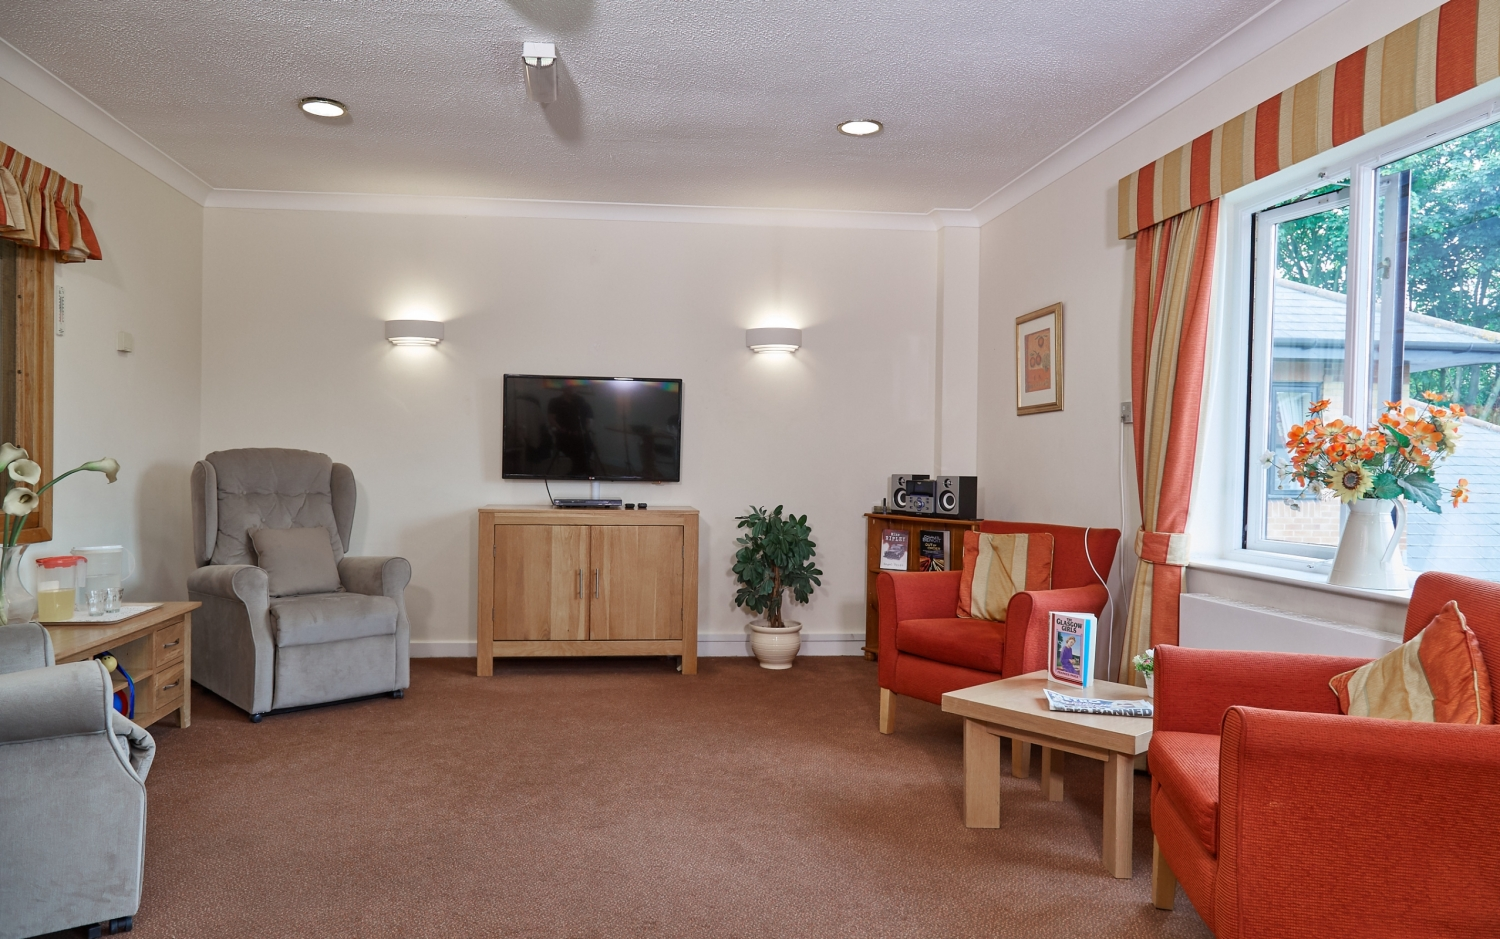 Care Home In London